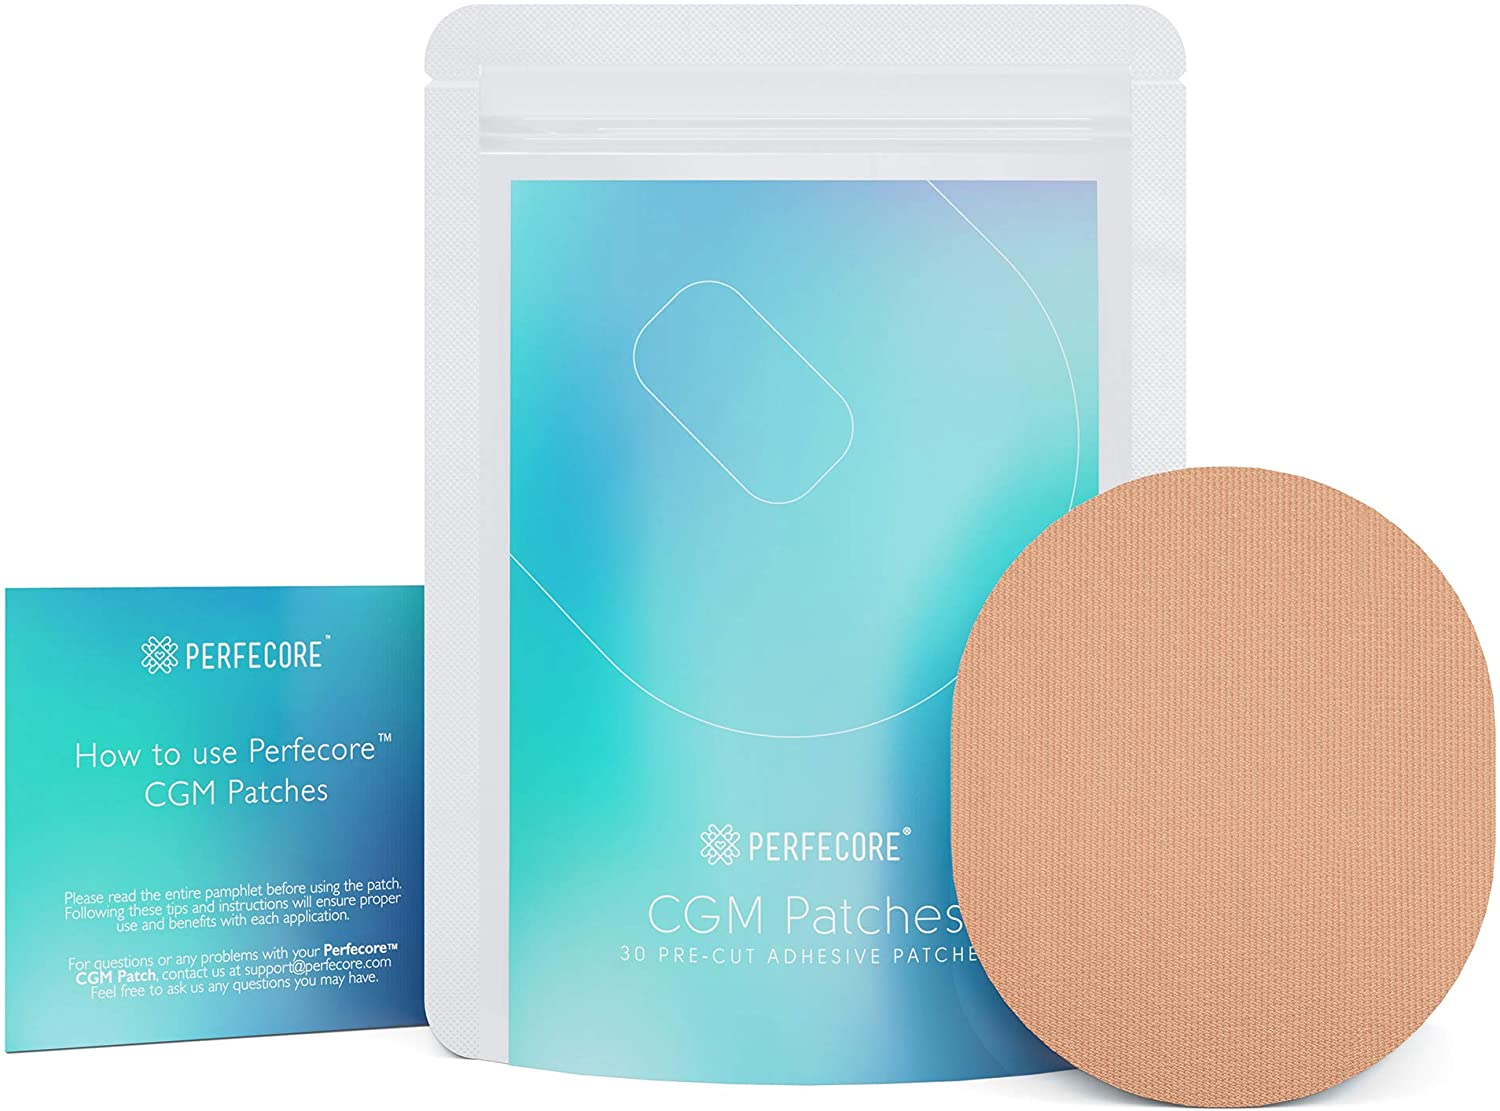 Freestyle Libre Adhesive Patches-55 Pack Freestyle Libre Sensor Covers,Transparent Waterproof Adhesive Patch,Clear CGM Overpatch-Tape Long Lasting to 14 Days-Without Hole.